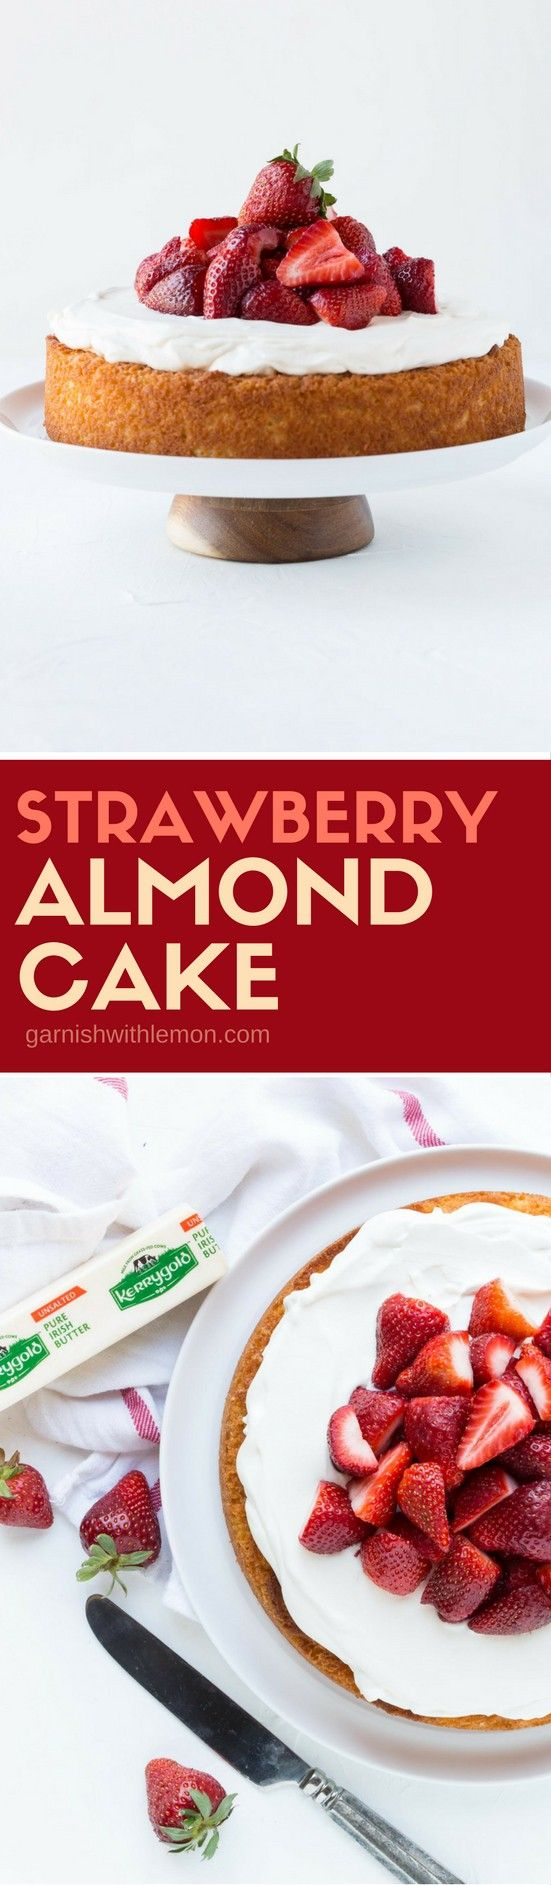 Spring desserts don't get much prettier (or easier) than this gorgeous Strawberry Almond Cake!